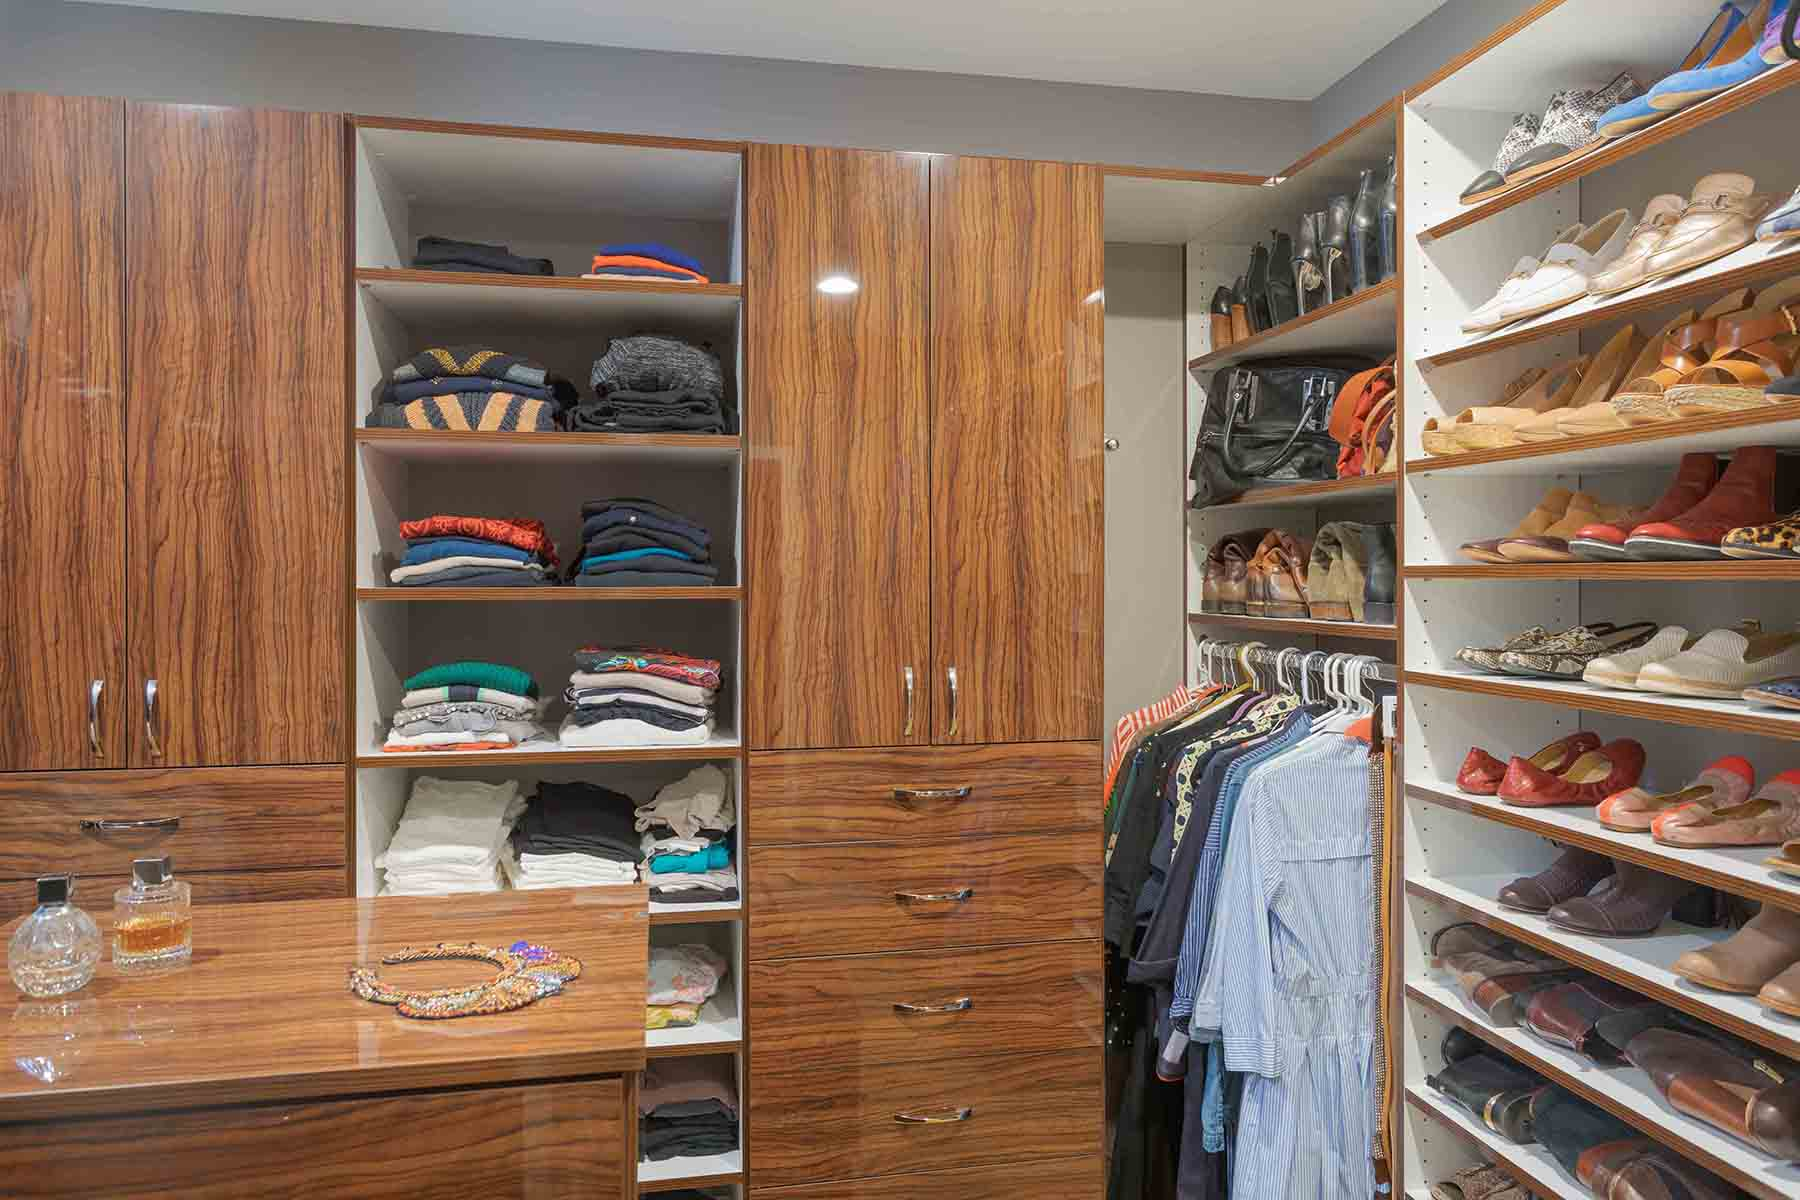 Are Closet Organizers Worth It?